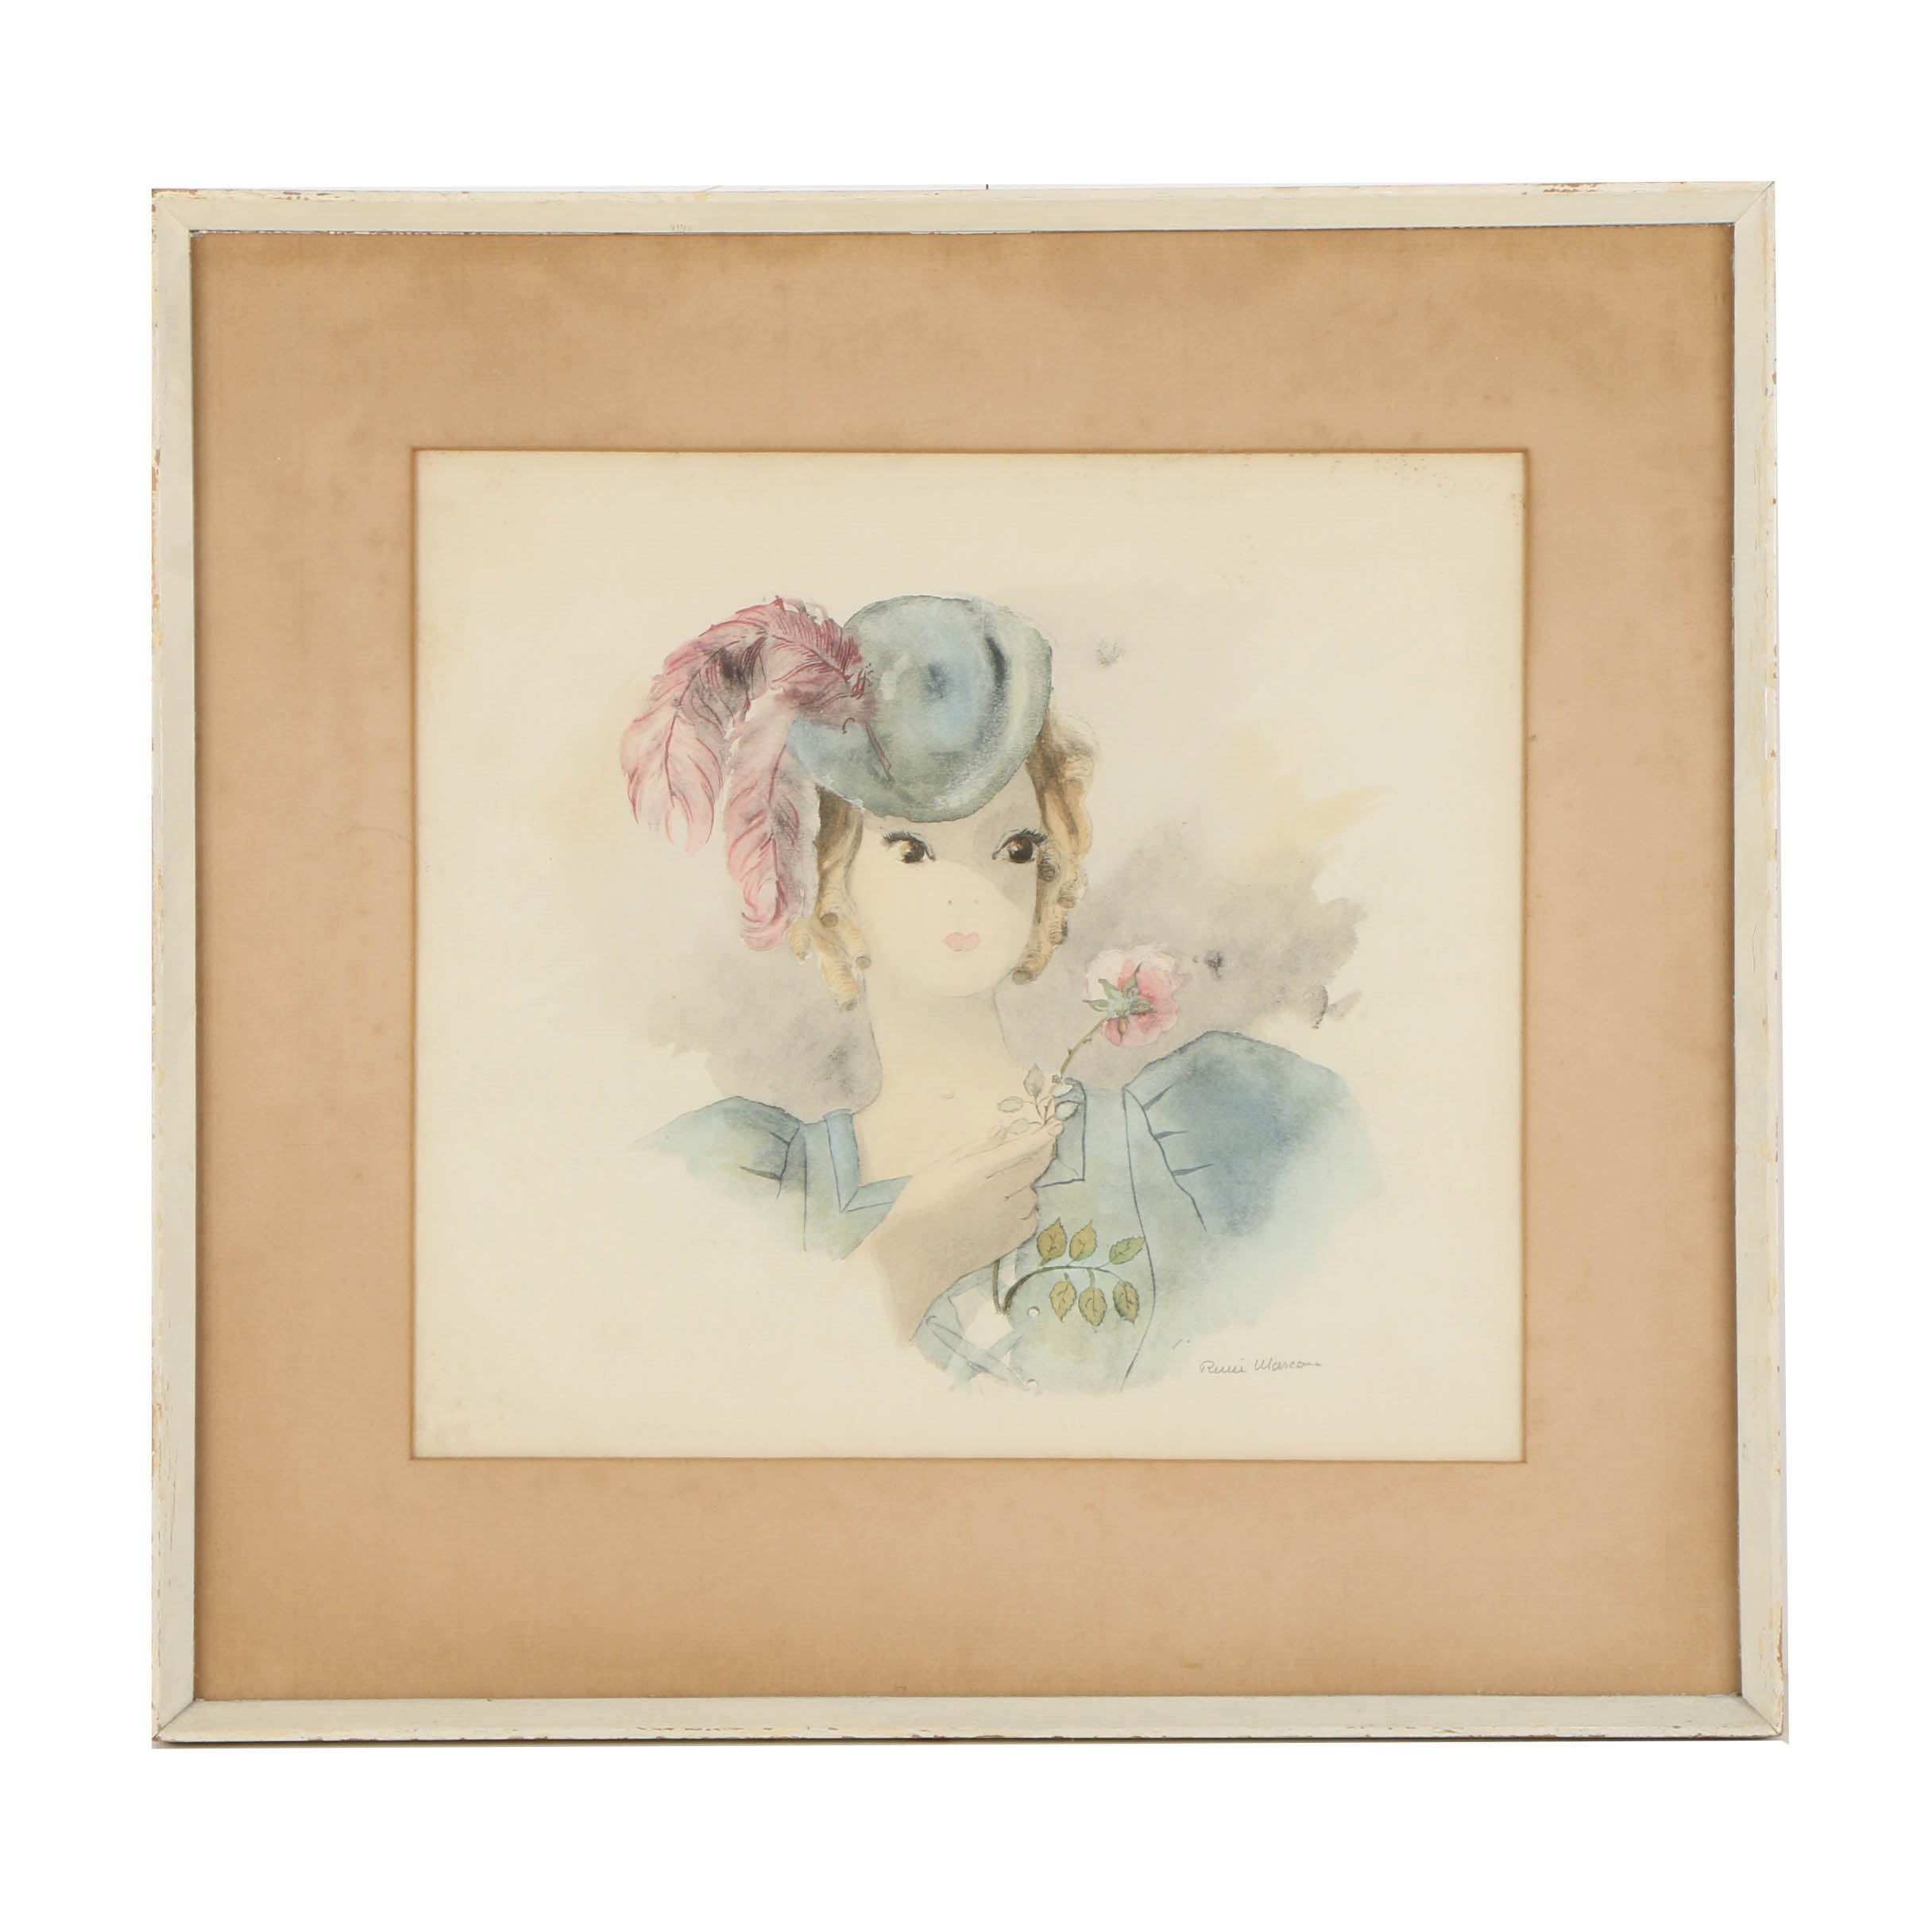 Hand-colored Lithograph on Paper of Woman